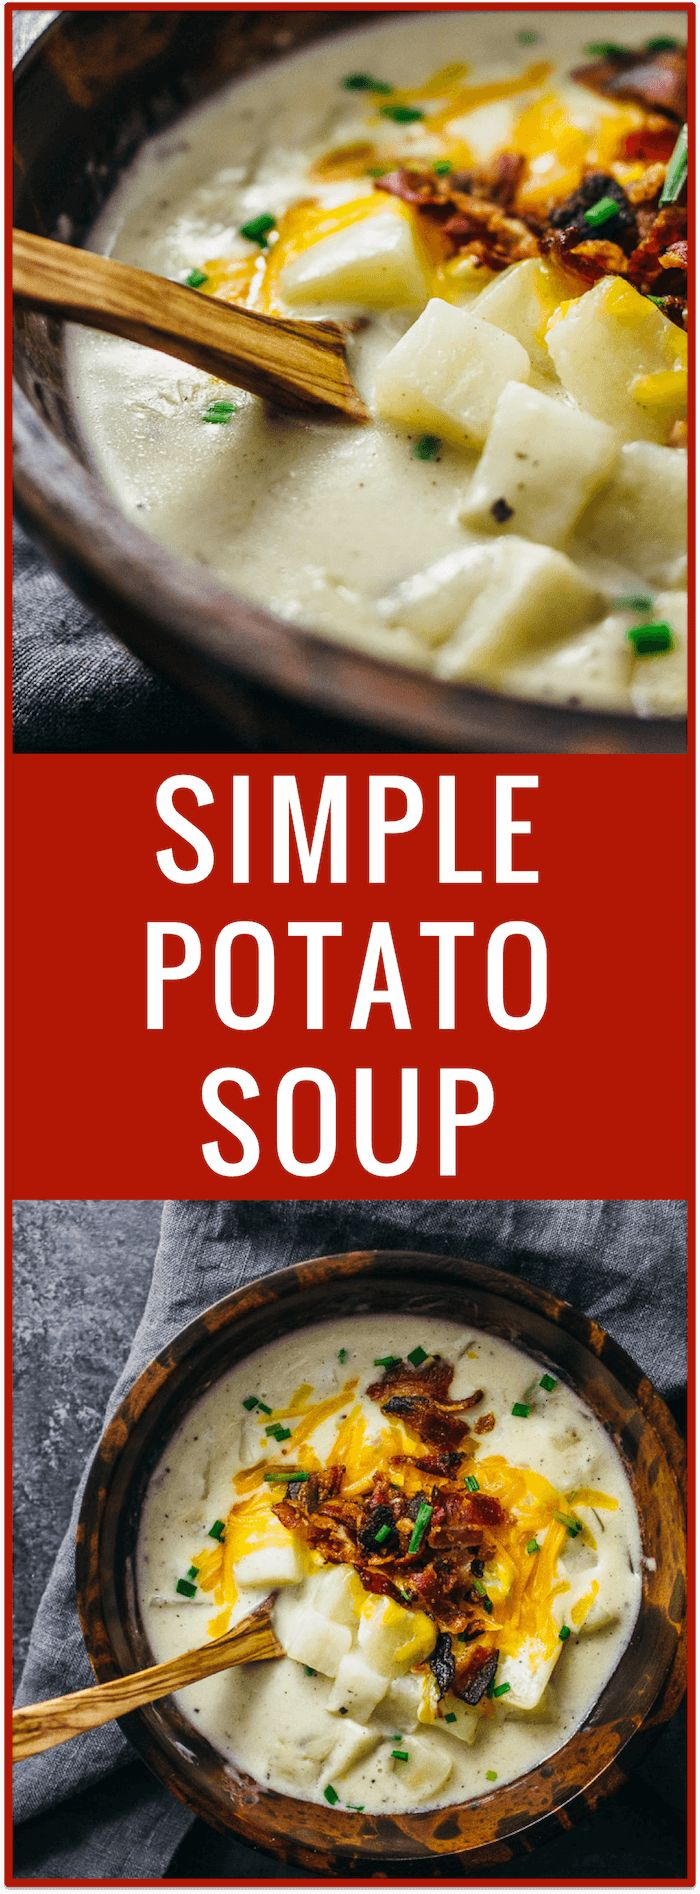 Creamy potato soup with bacon and cheddar | Cheesy potato soup | Simple potato soup | Comfort food | One pot dinner | Easy recipe (Best Dinner Easy)